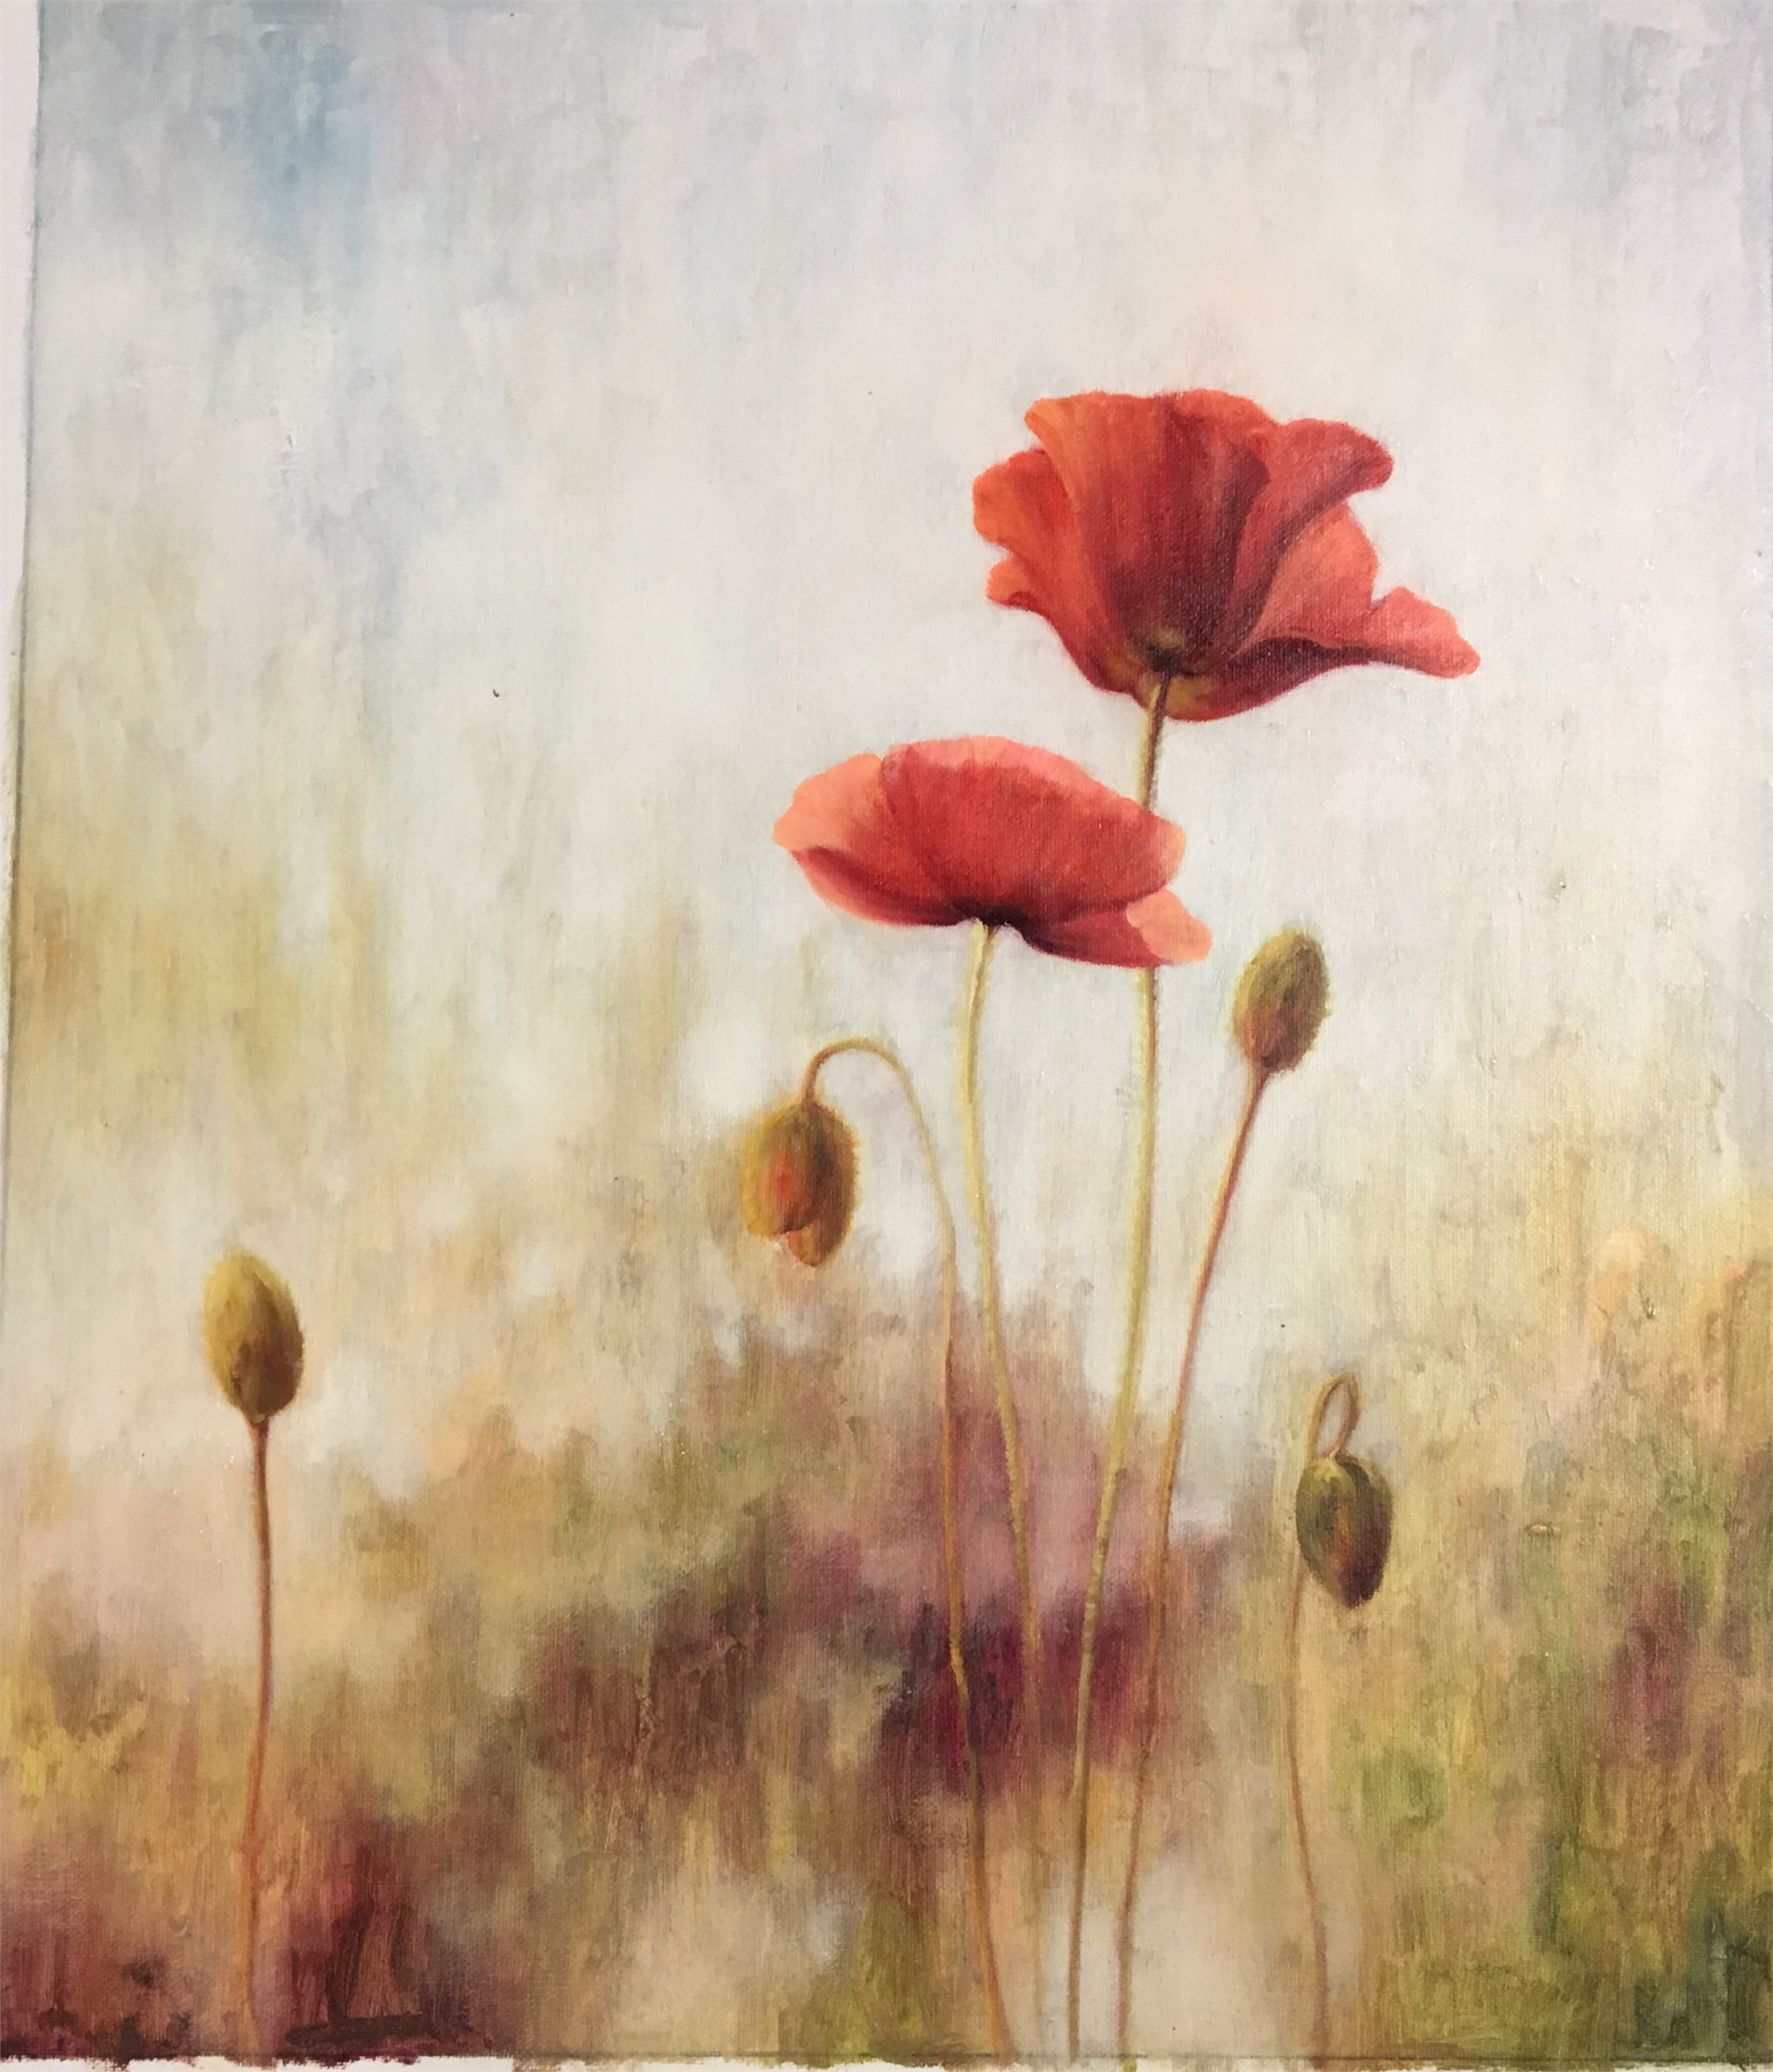 PAIR OF POPPIES by VARIOUS WORKS